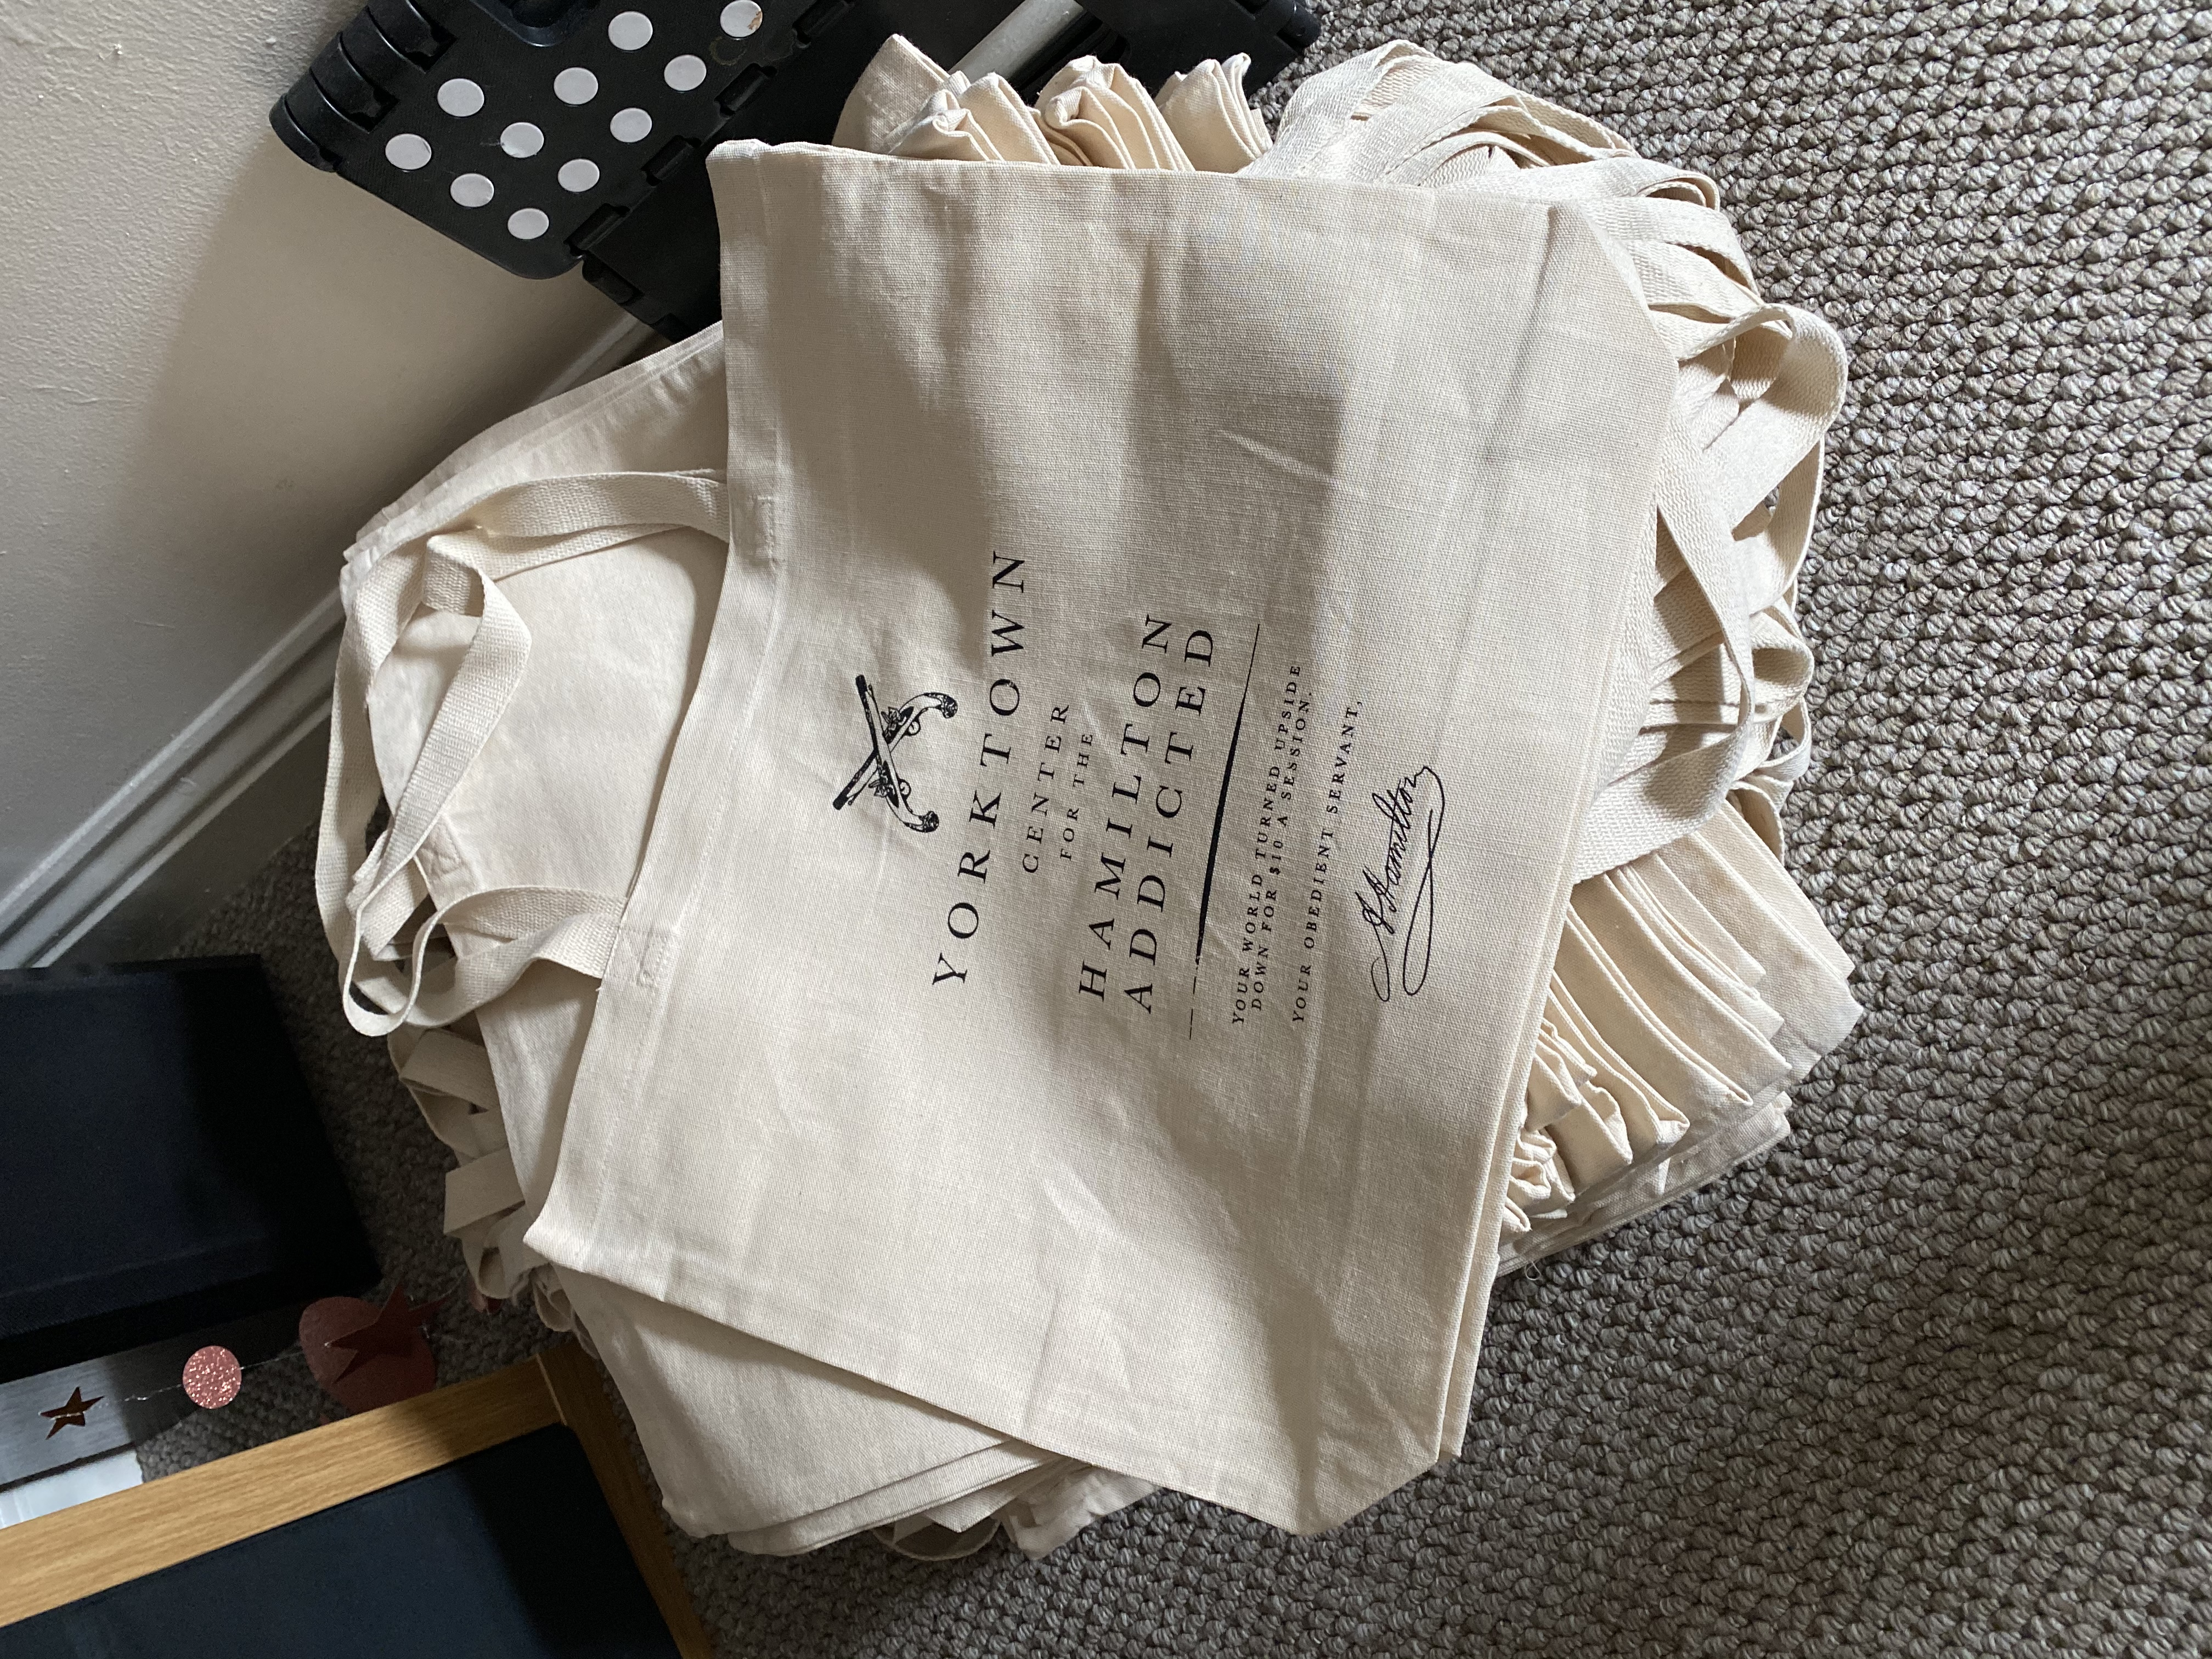 Name your own price on charity Hamilton tote bags